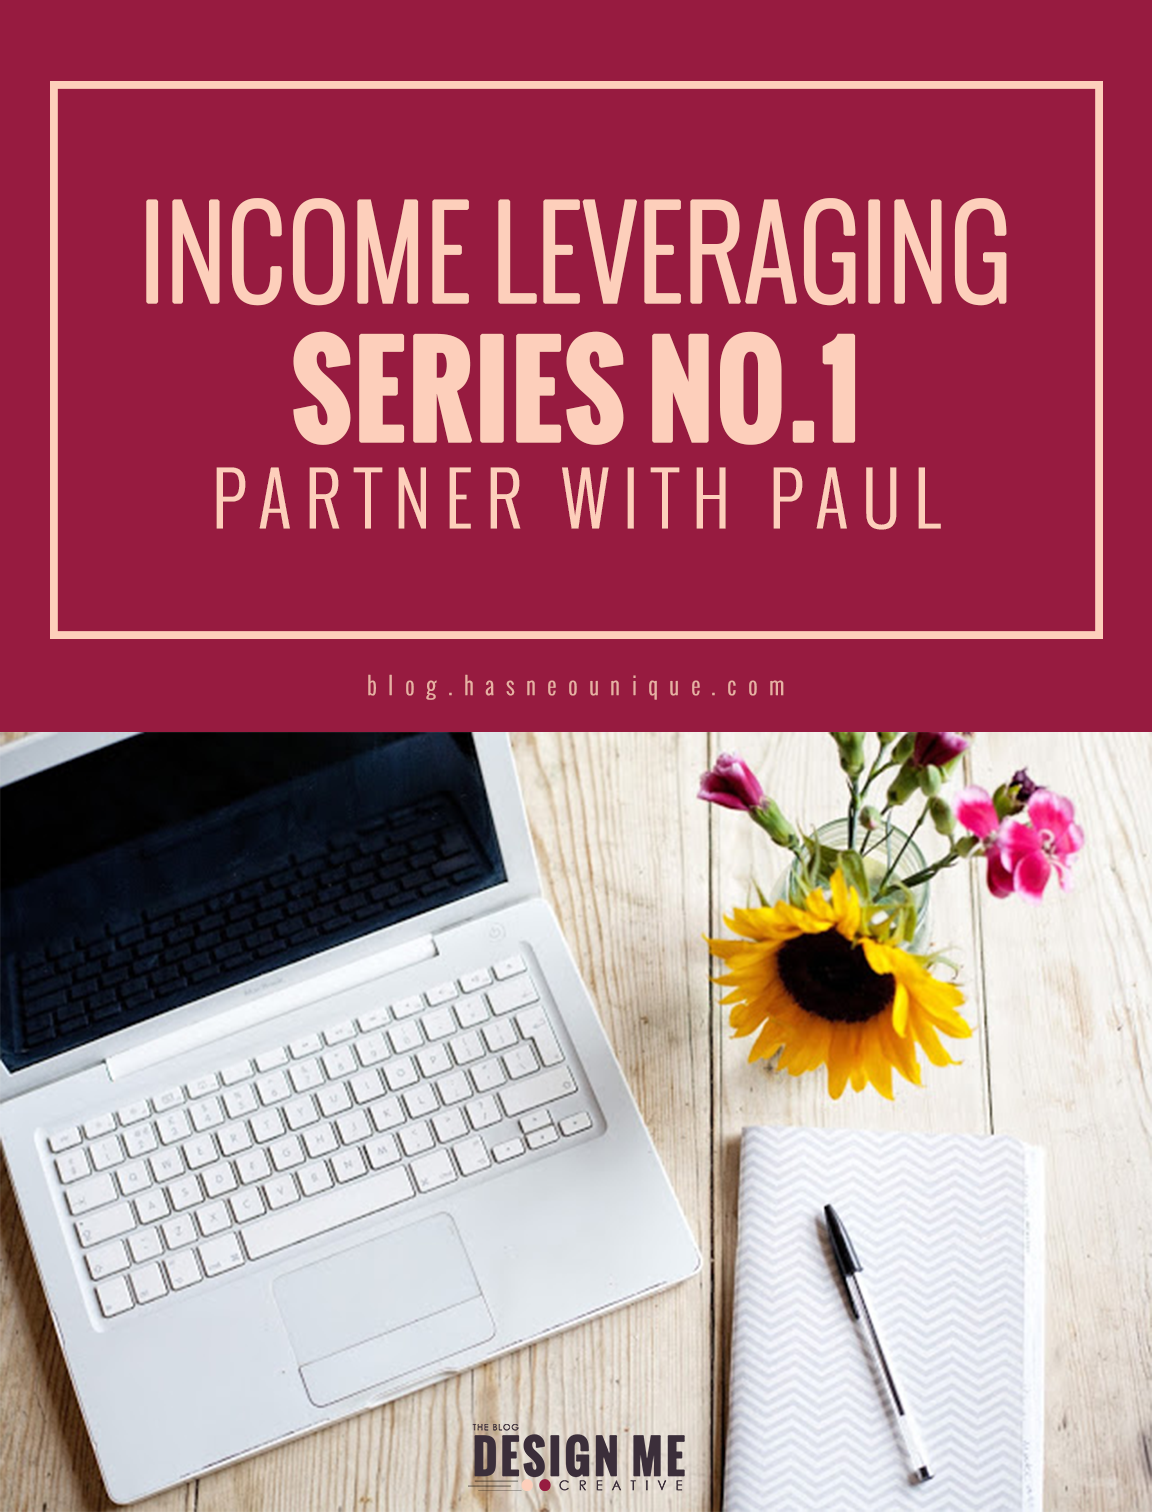 leverage partner with paul income review